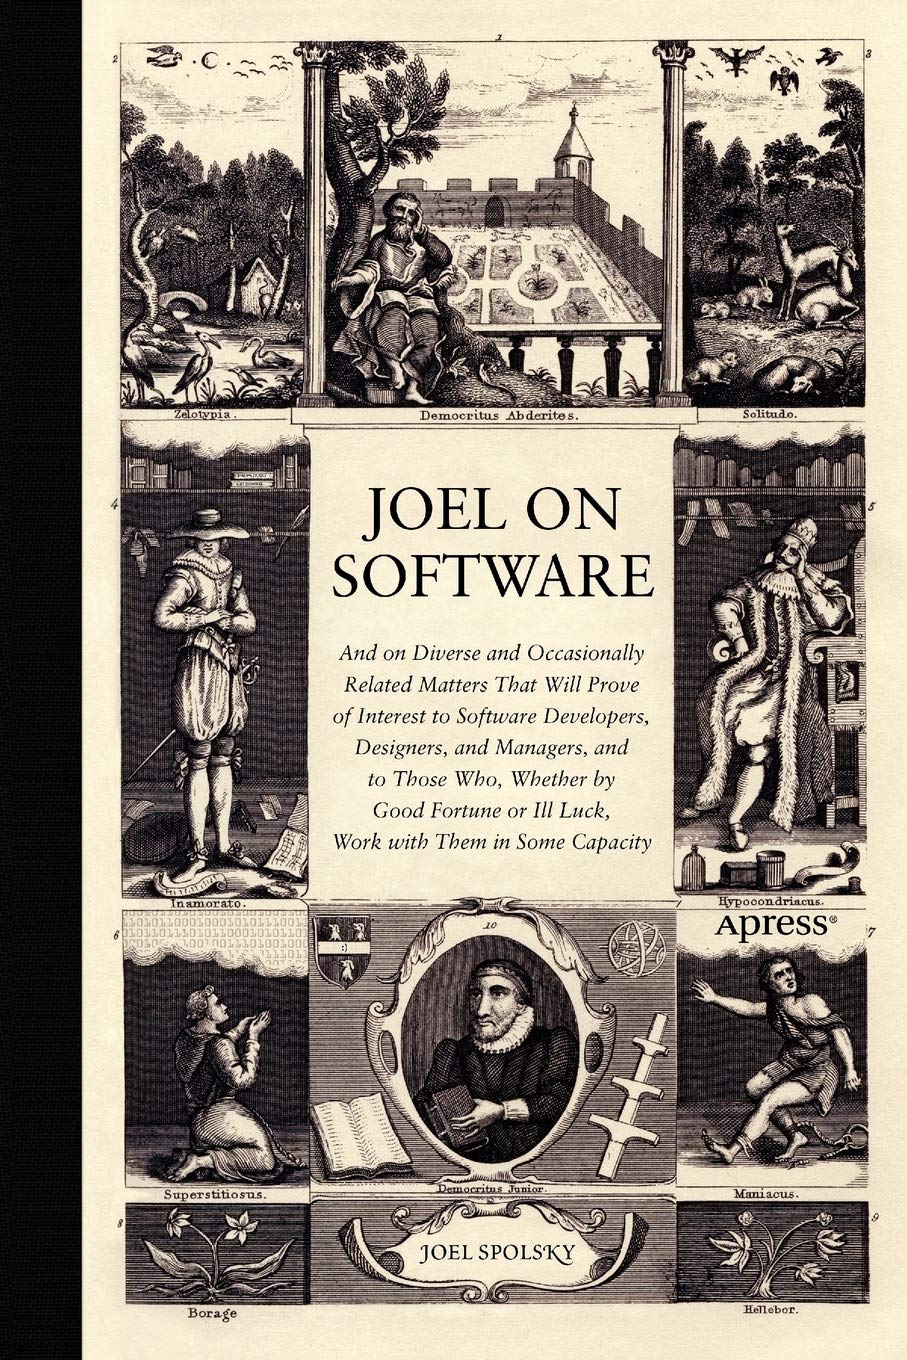 Image OfJoel On Software: And On Diverse And Occasionally Related Matters That Will Prove Of Interest To Software Developers, Desi...